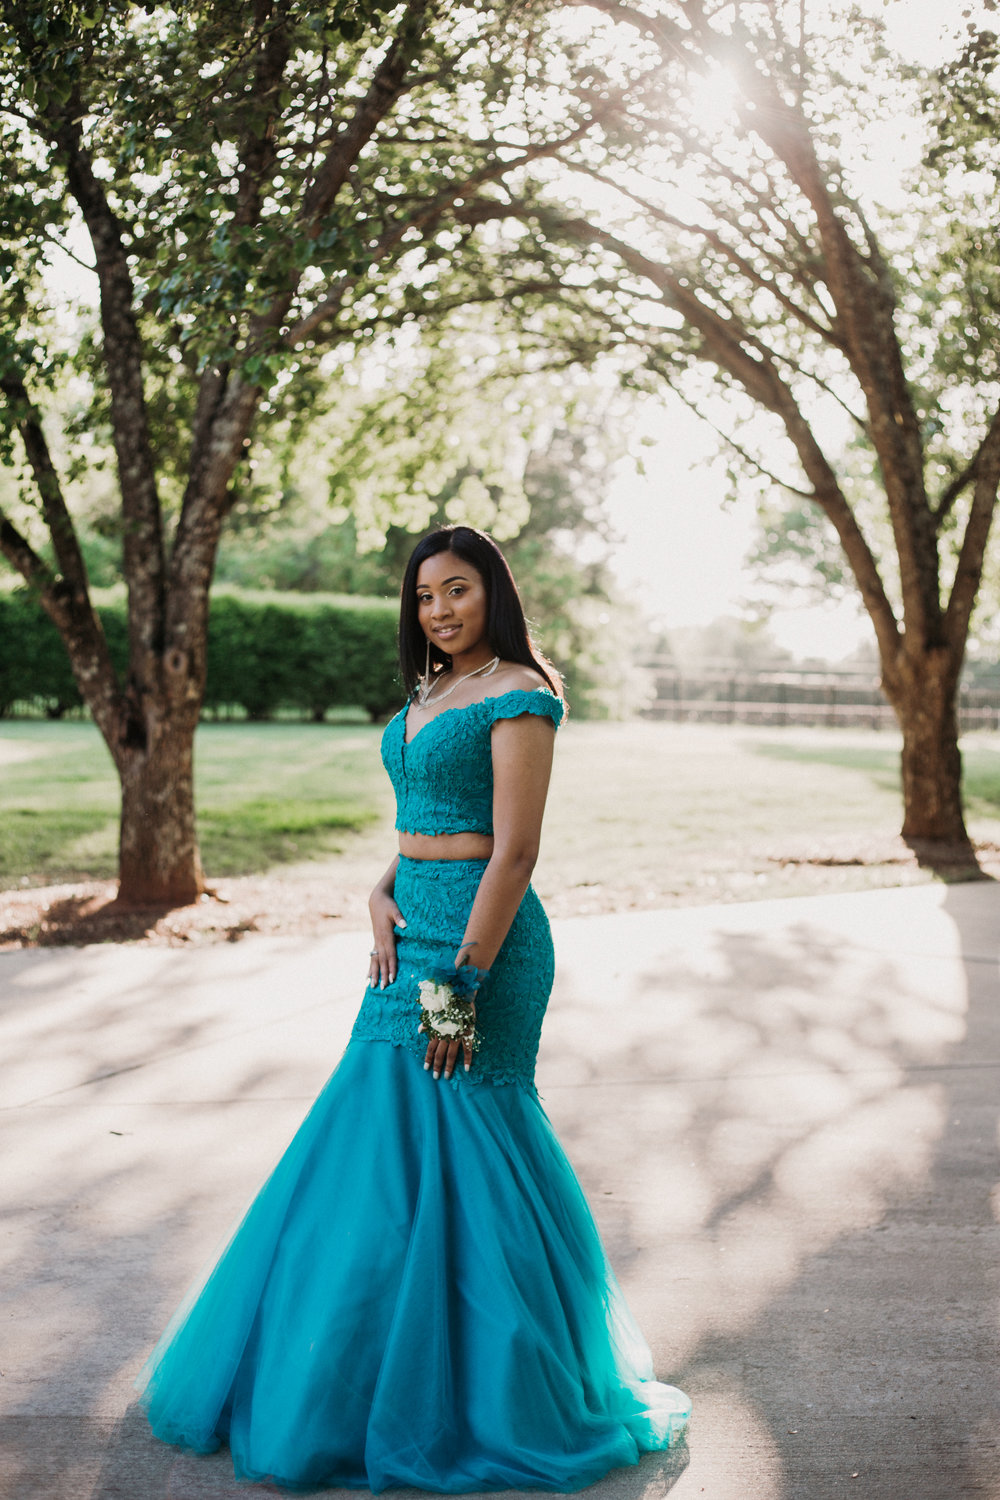 charlotte-senior-portrait-photographer-high-school-prom-0060.jpg